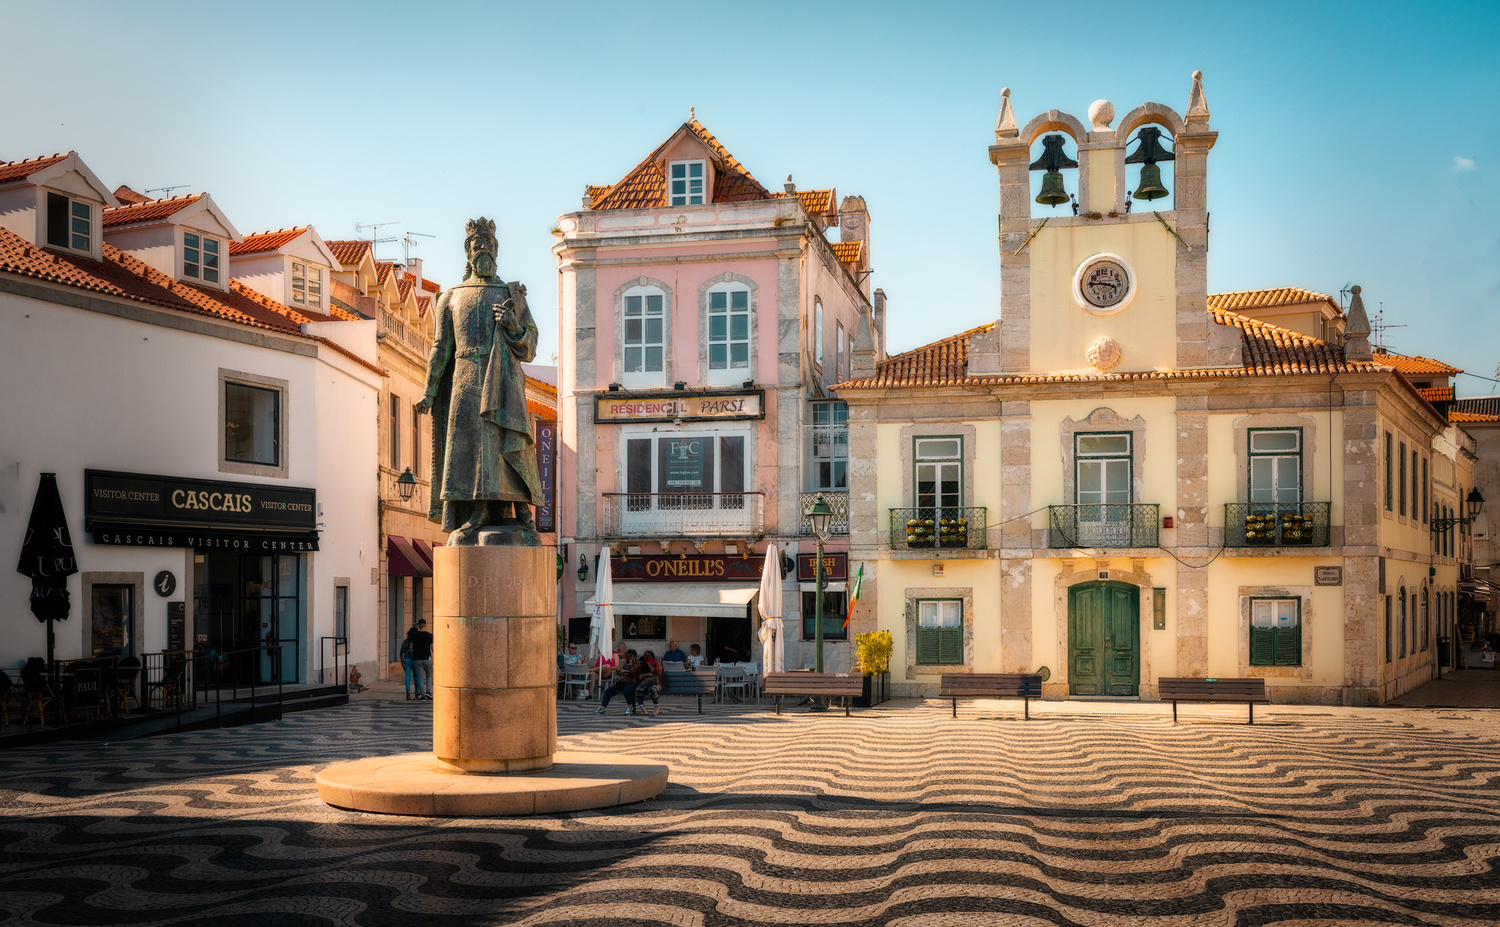 The Square of 5th October | Cascais, Portugal by Nico Trinkhaus